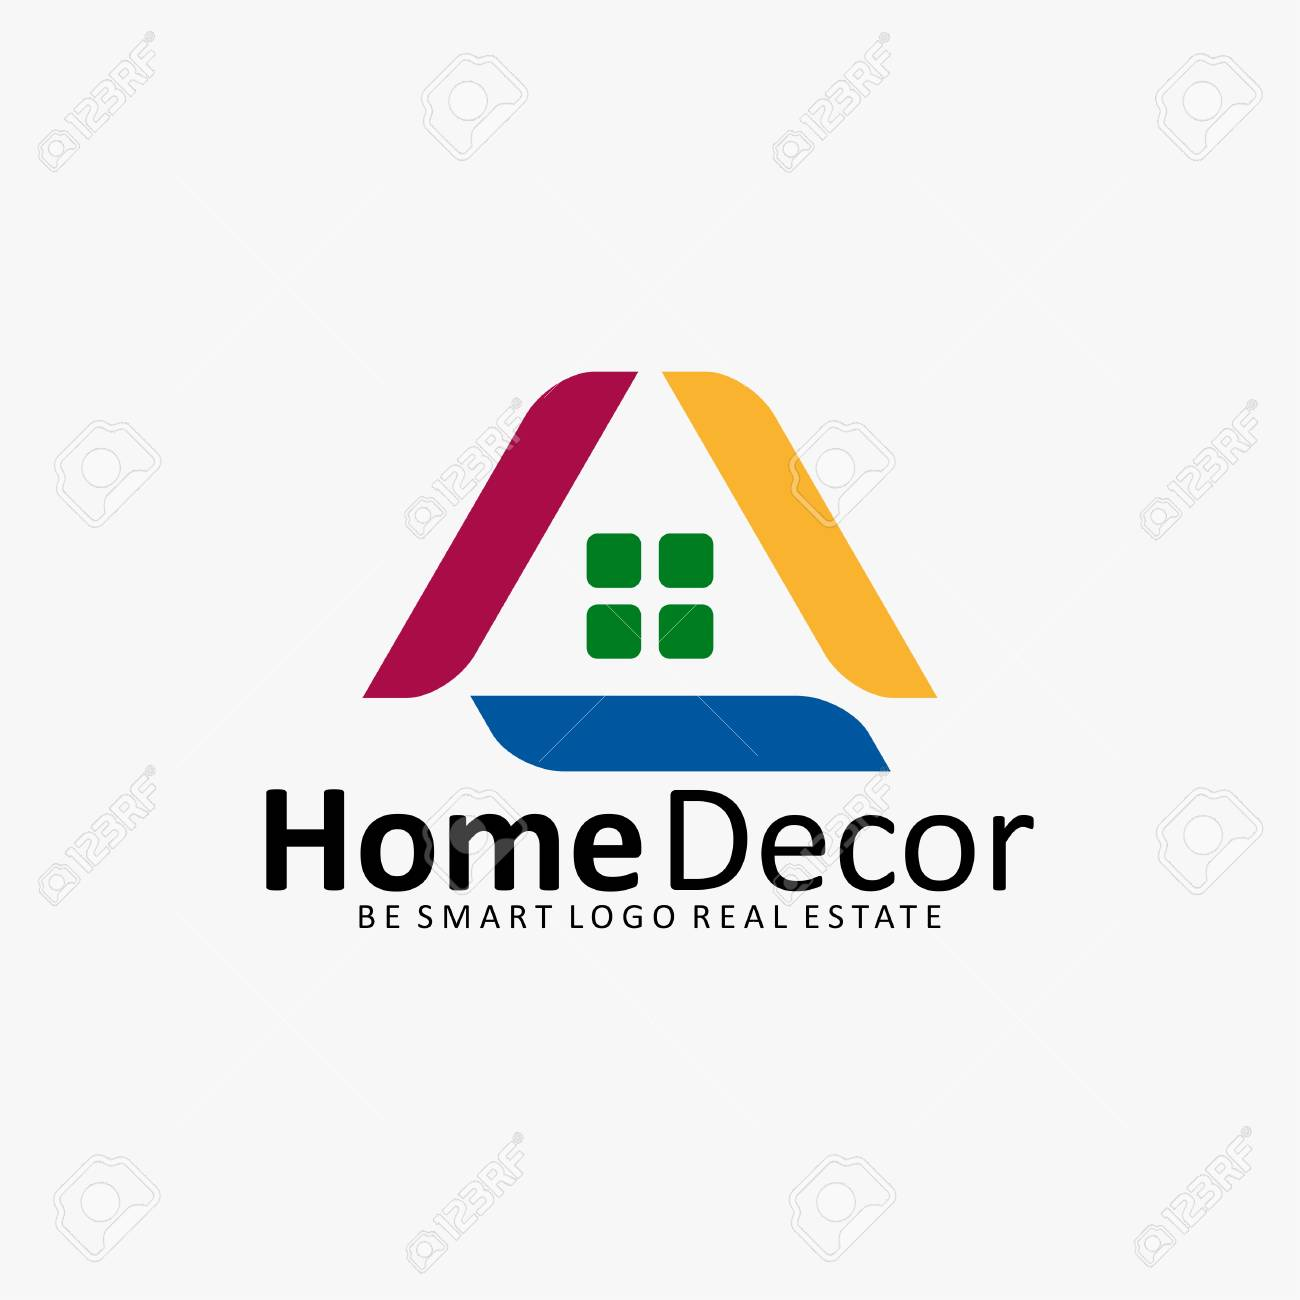 Home Decor House Real Estate Icon Logo Royalty Free Cliparts